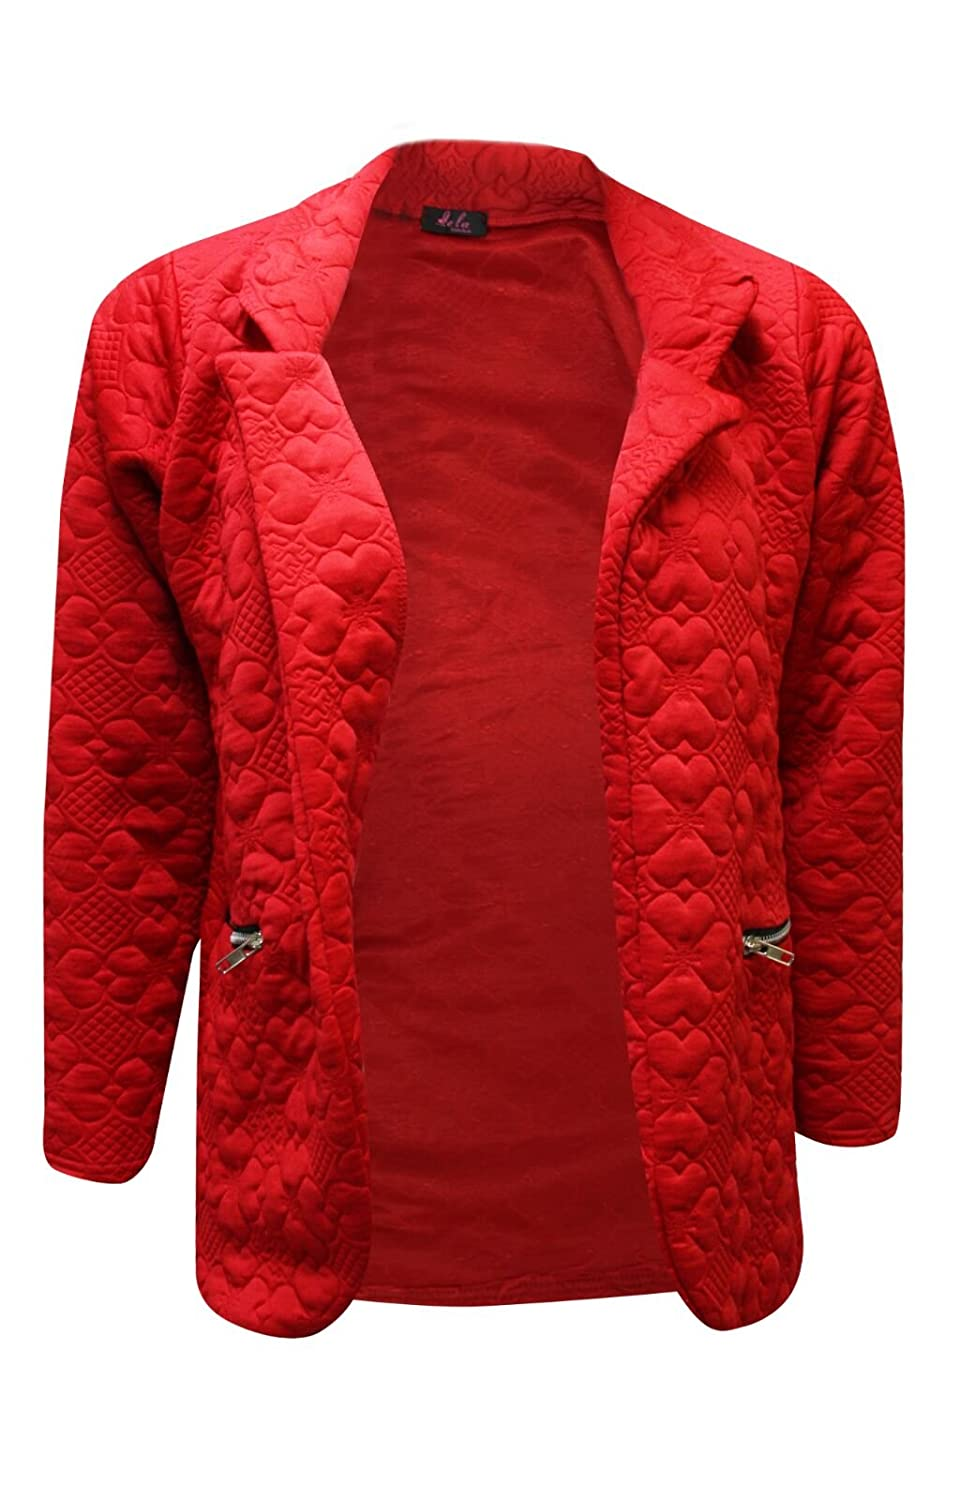 Comfiestyle New Women's Quilted Long Sleeves Side Pockets Short Body Open Front Blazer Coat. UK 8-18